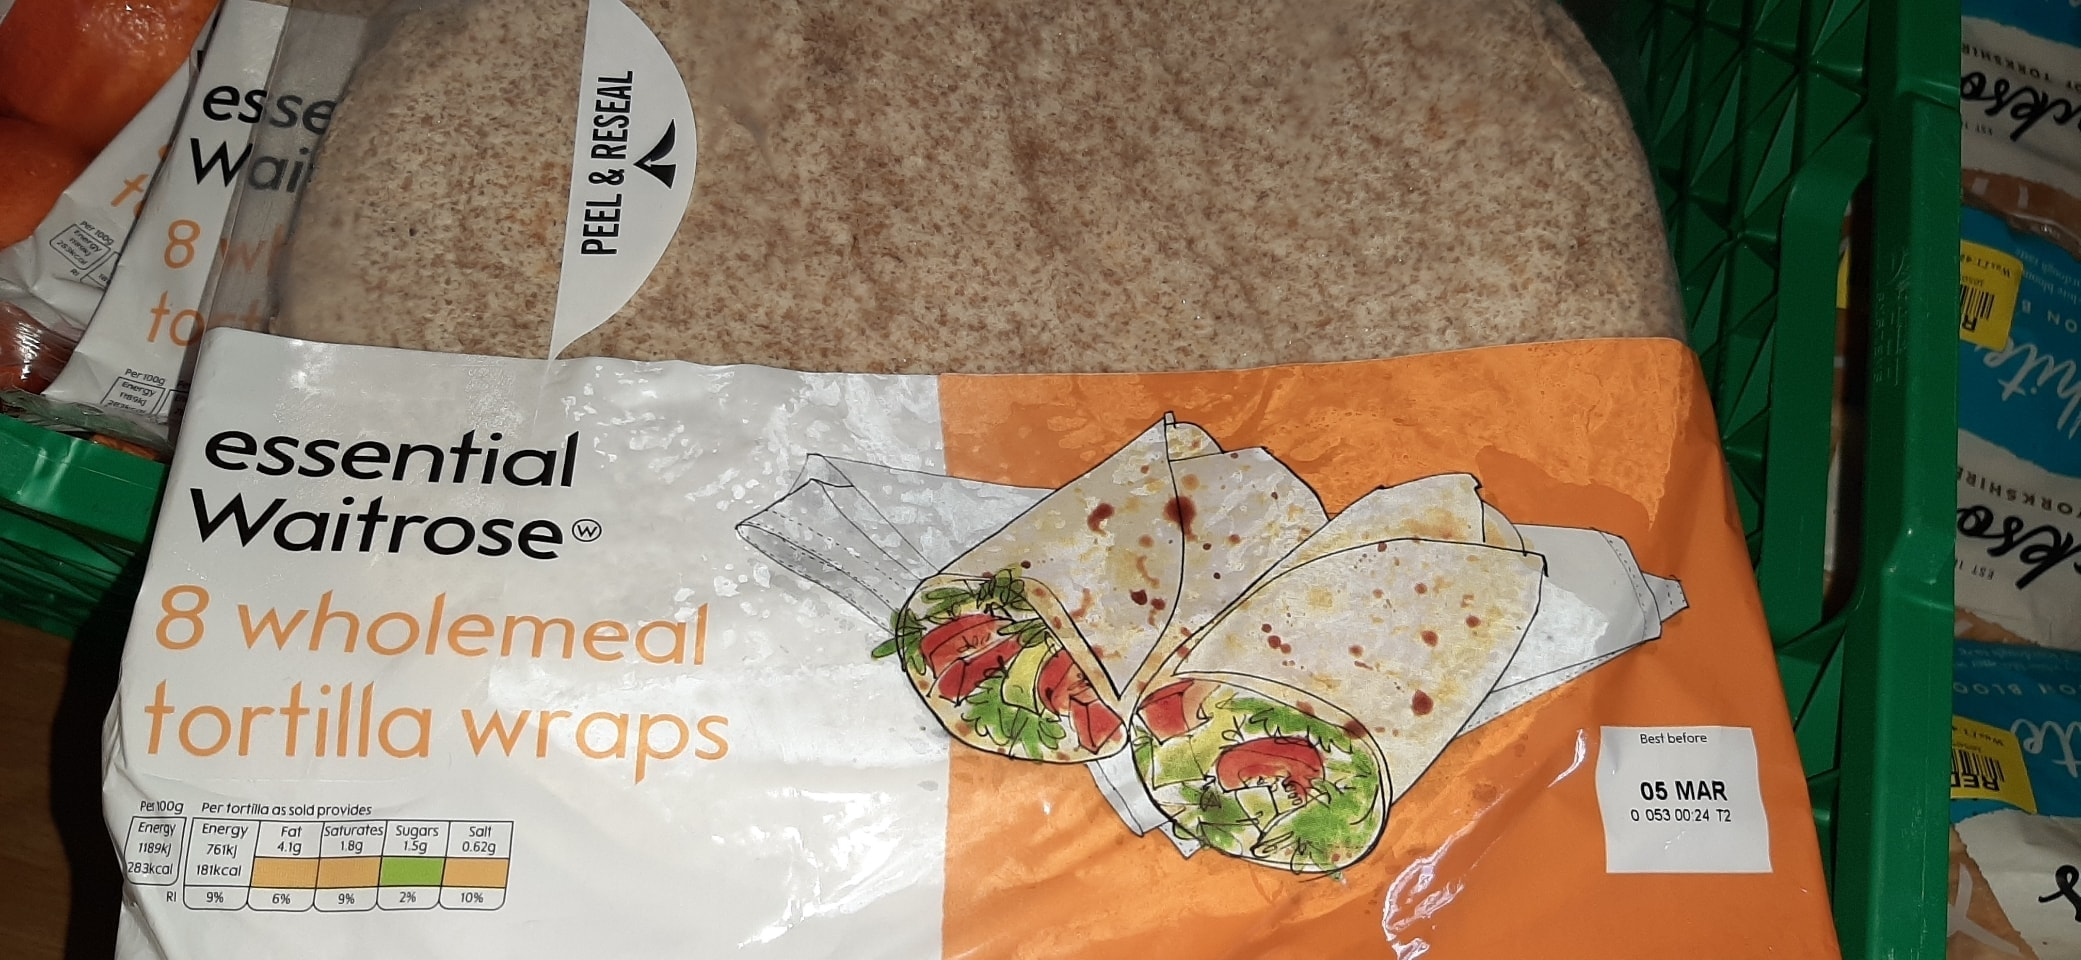 Wholemeal wraps